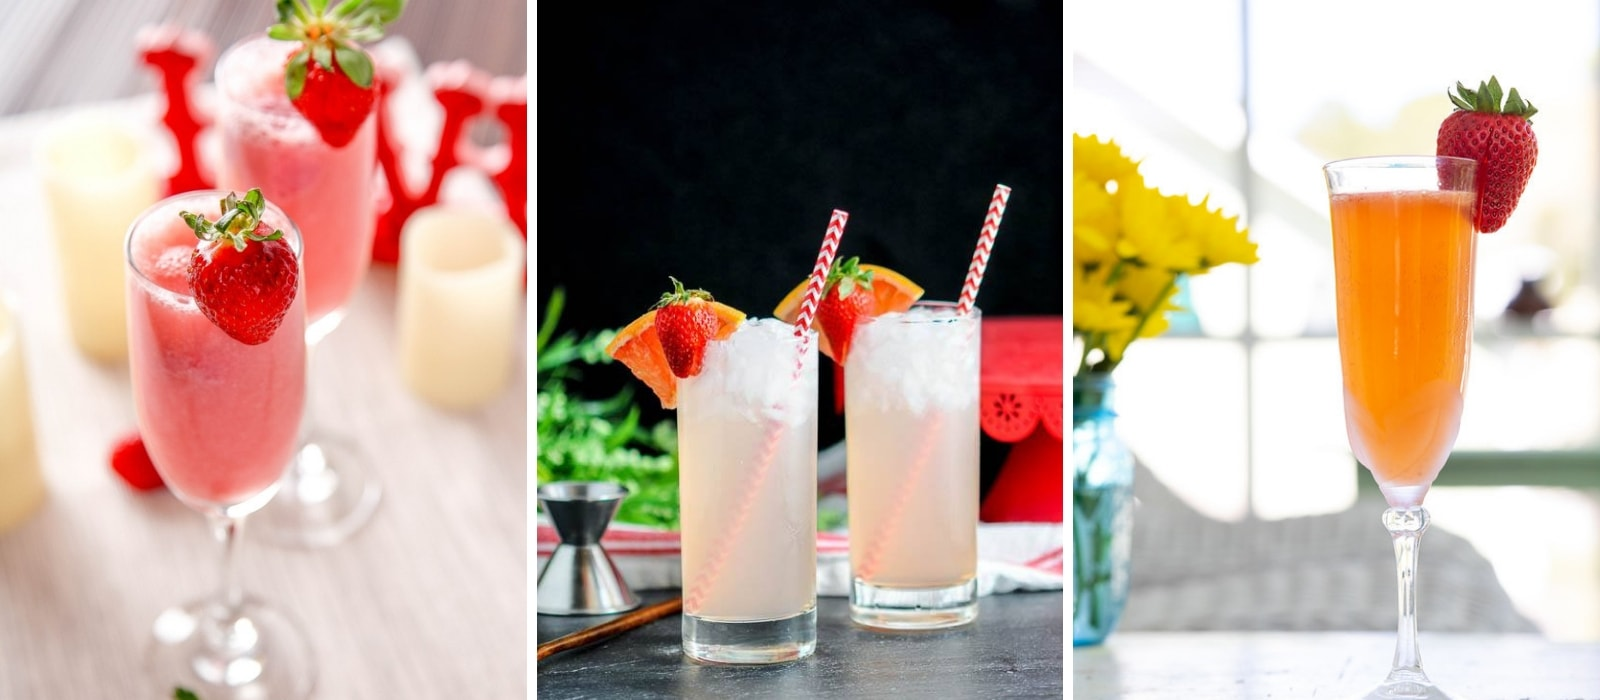 Strawberry Alcoholic Drinks